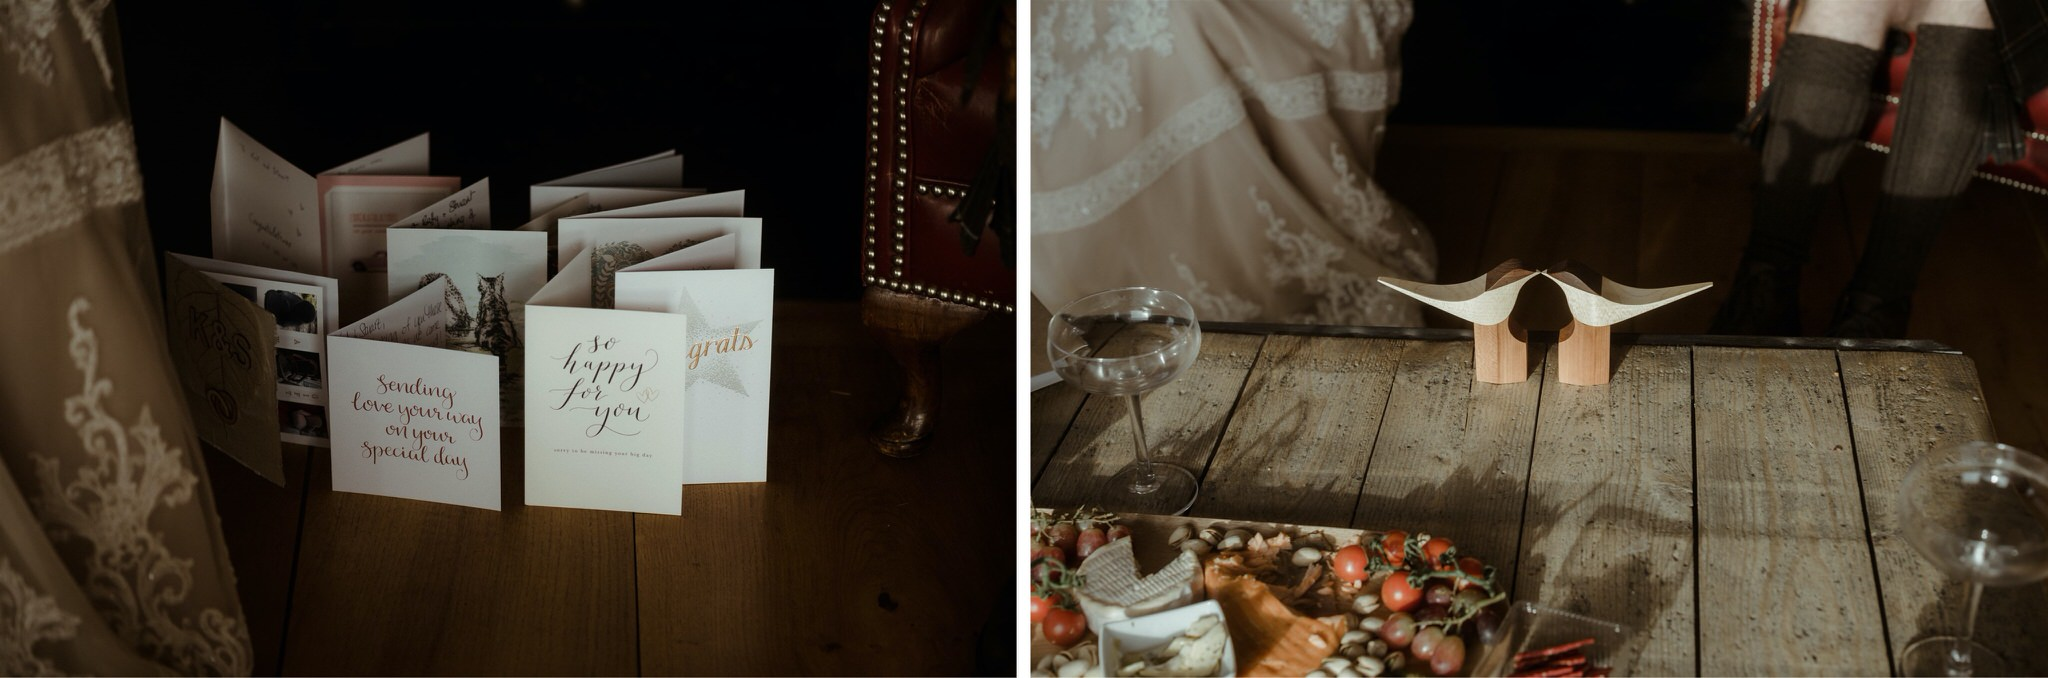 Cards on a table after a Scotland elopement wedding